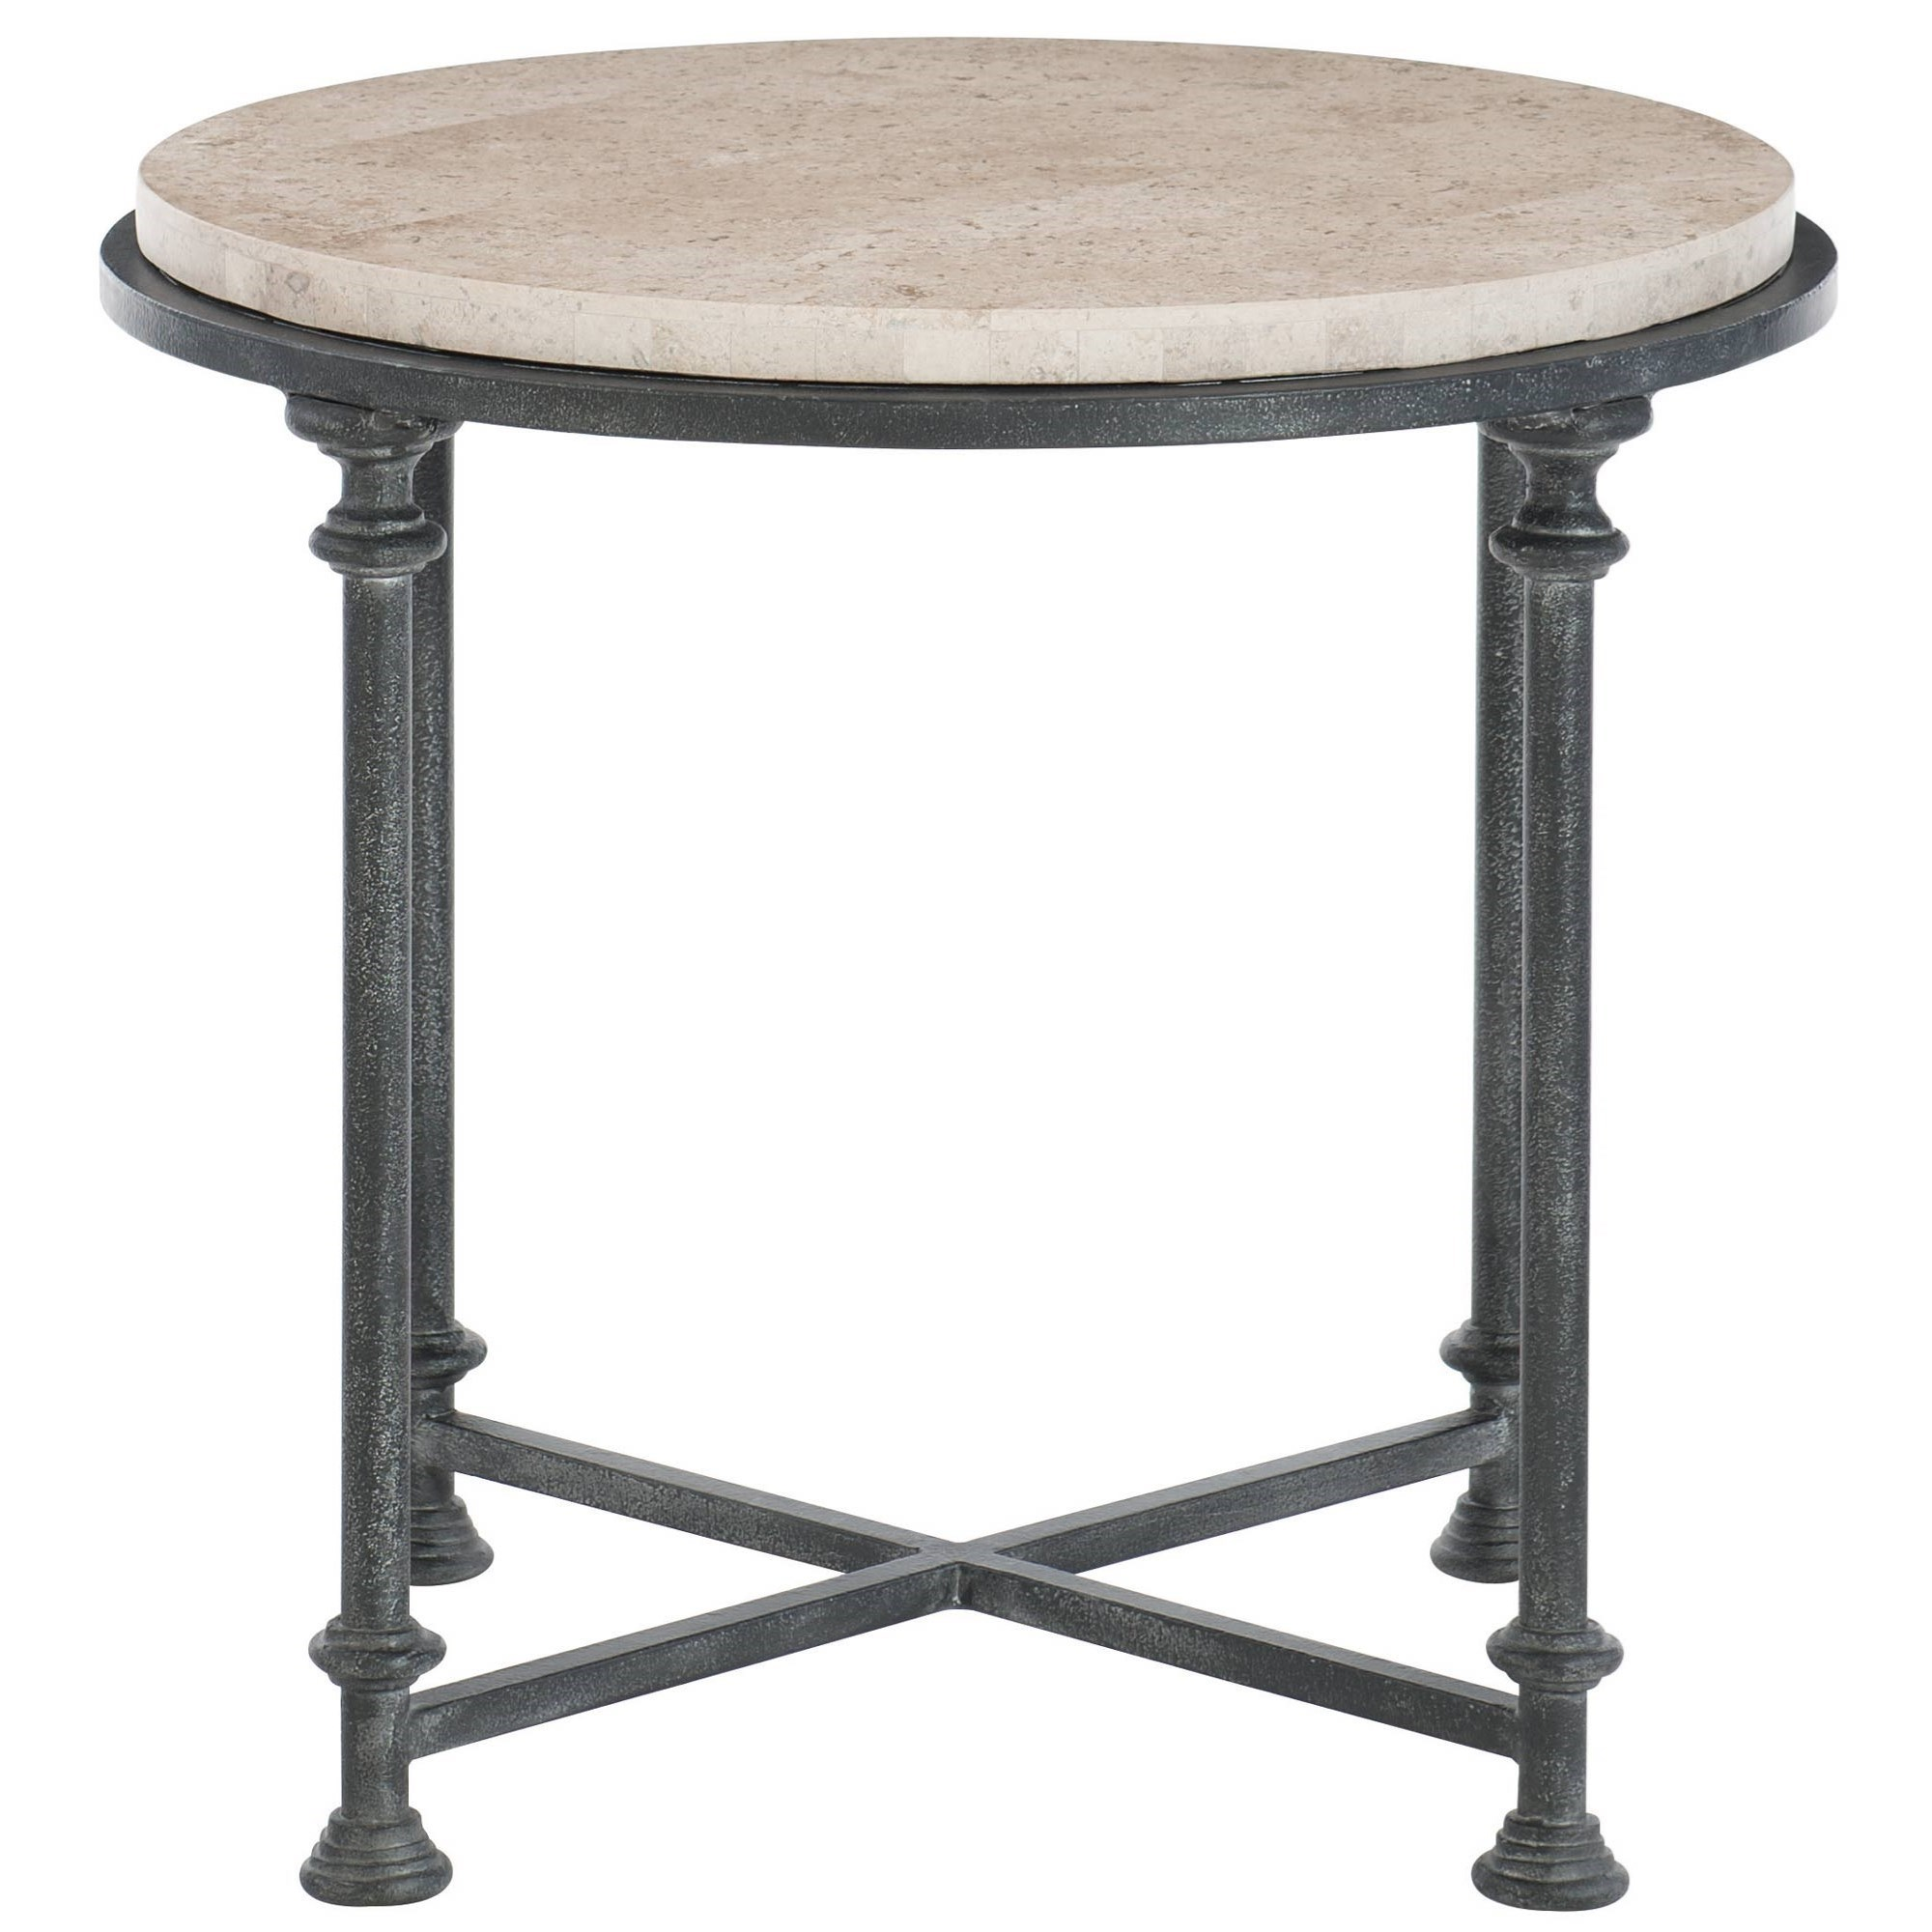 Galesbury Round Metal End Table by Bernhardt at Darvin Furniture